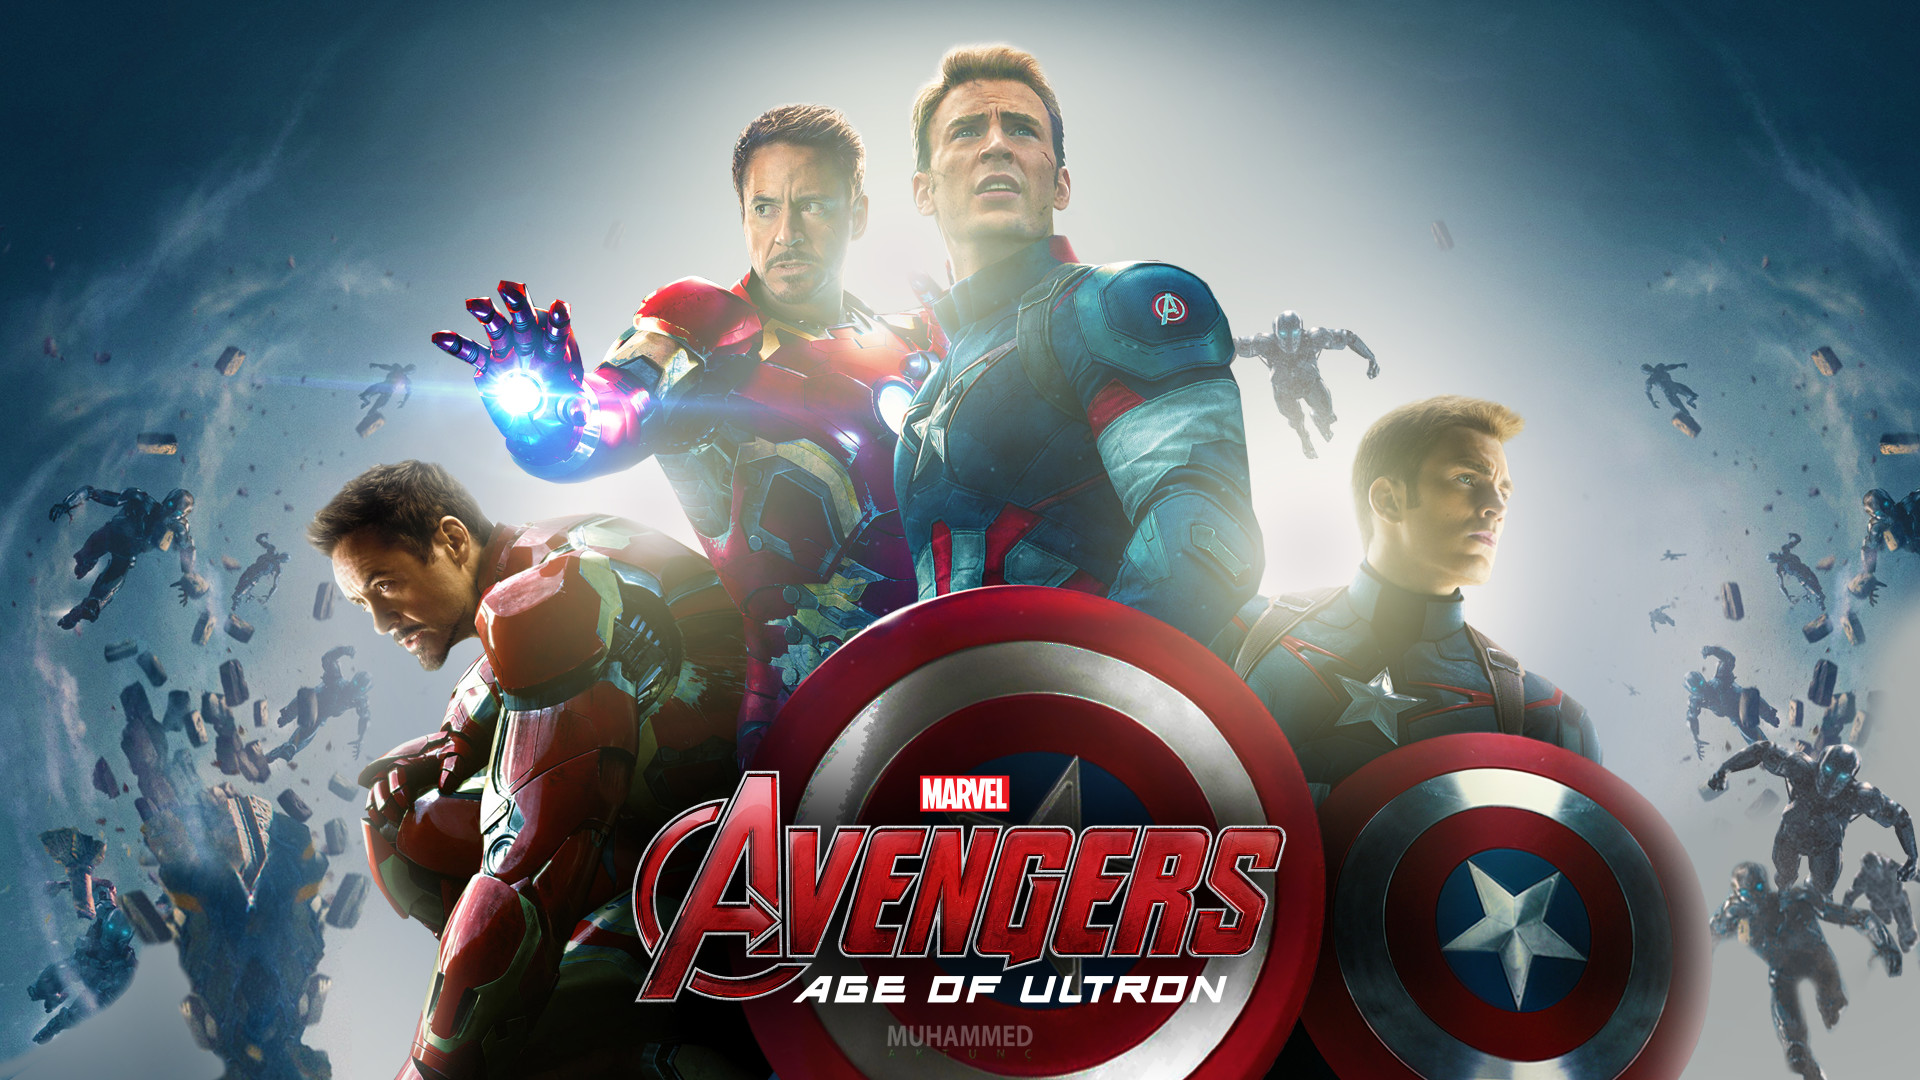 1920x1080 Avengers Age Of Ultron Wallpaper Desktop Background As Wallpaper HD